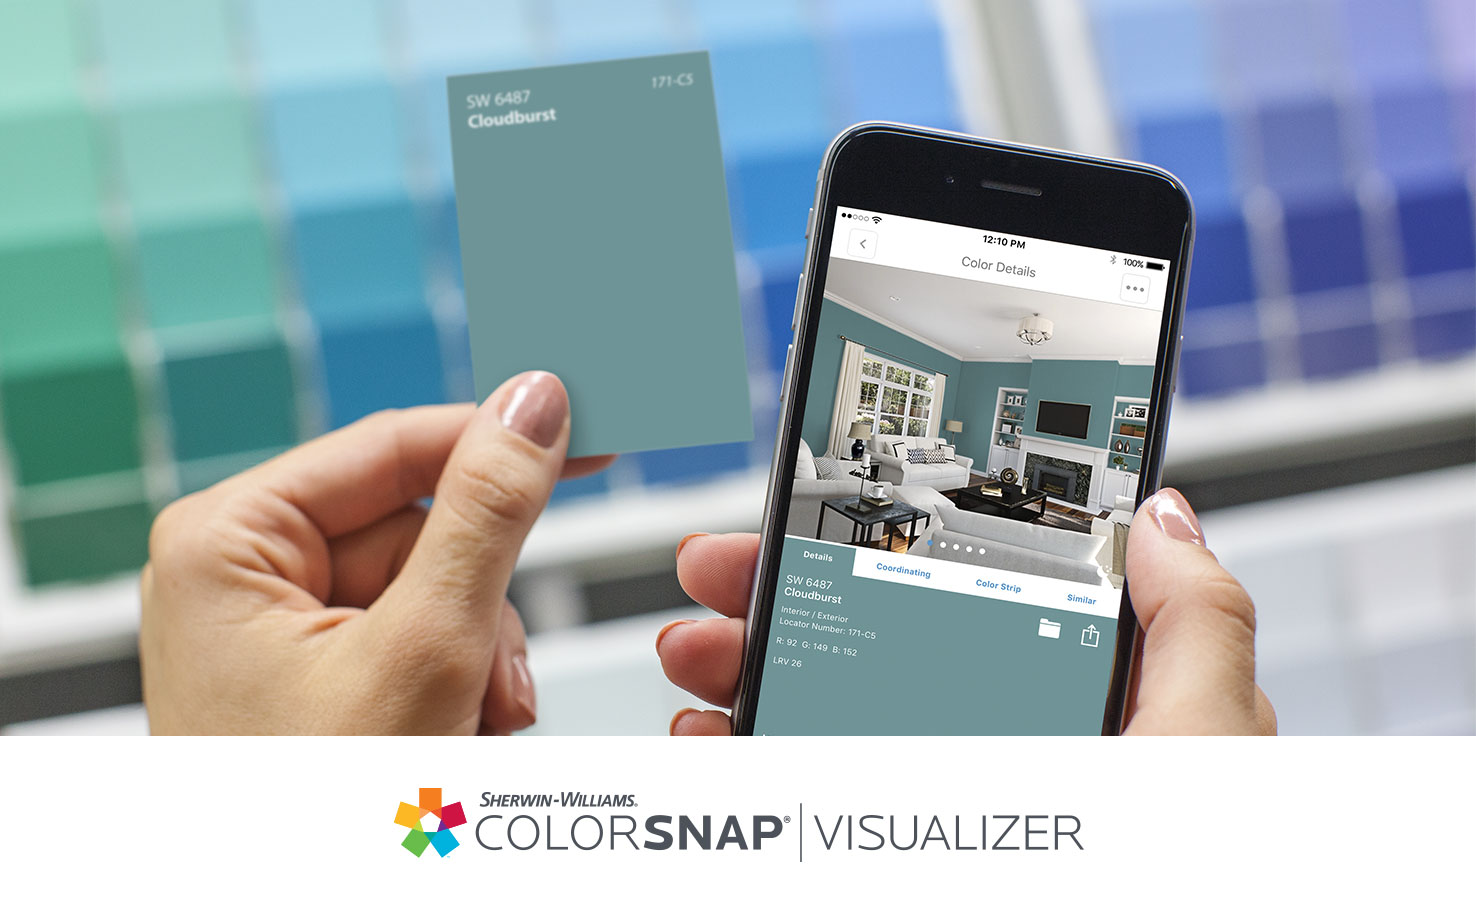 Find The Perfect Color Anywhere Anytime With Colorsnap Visualizer For Mobile